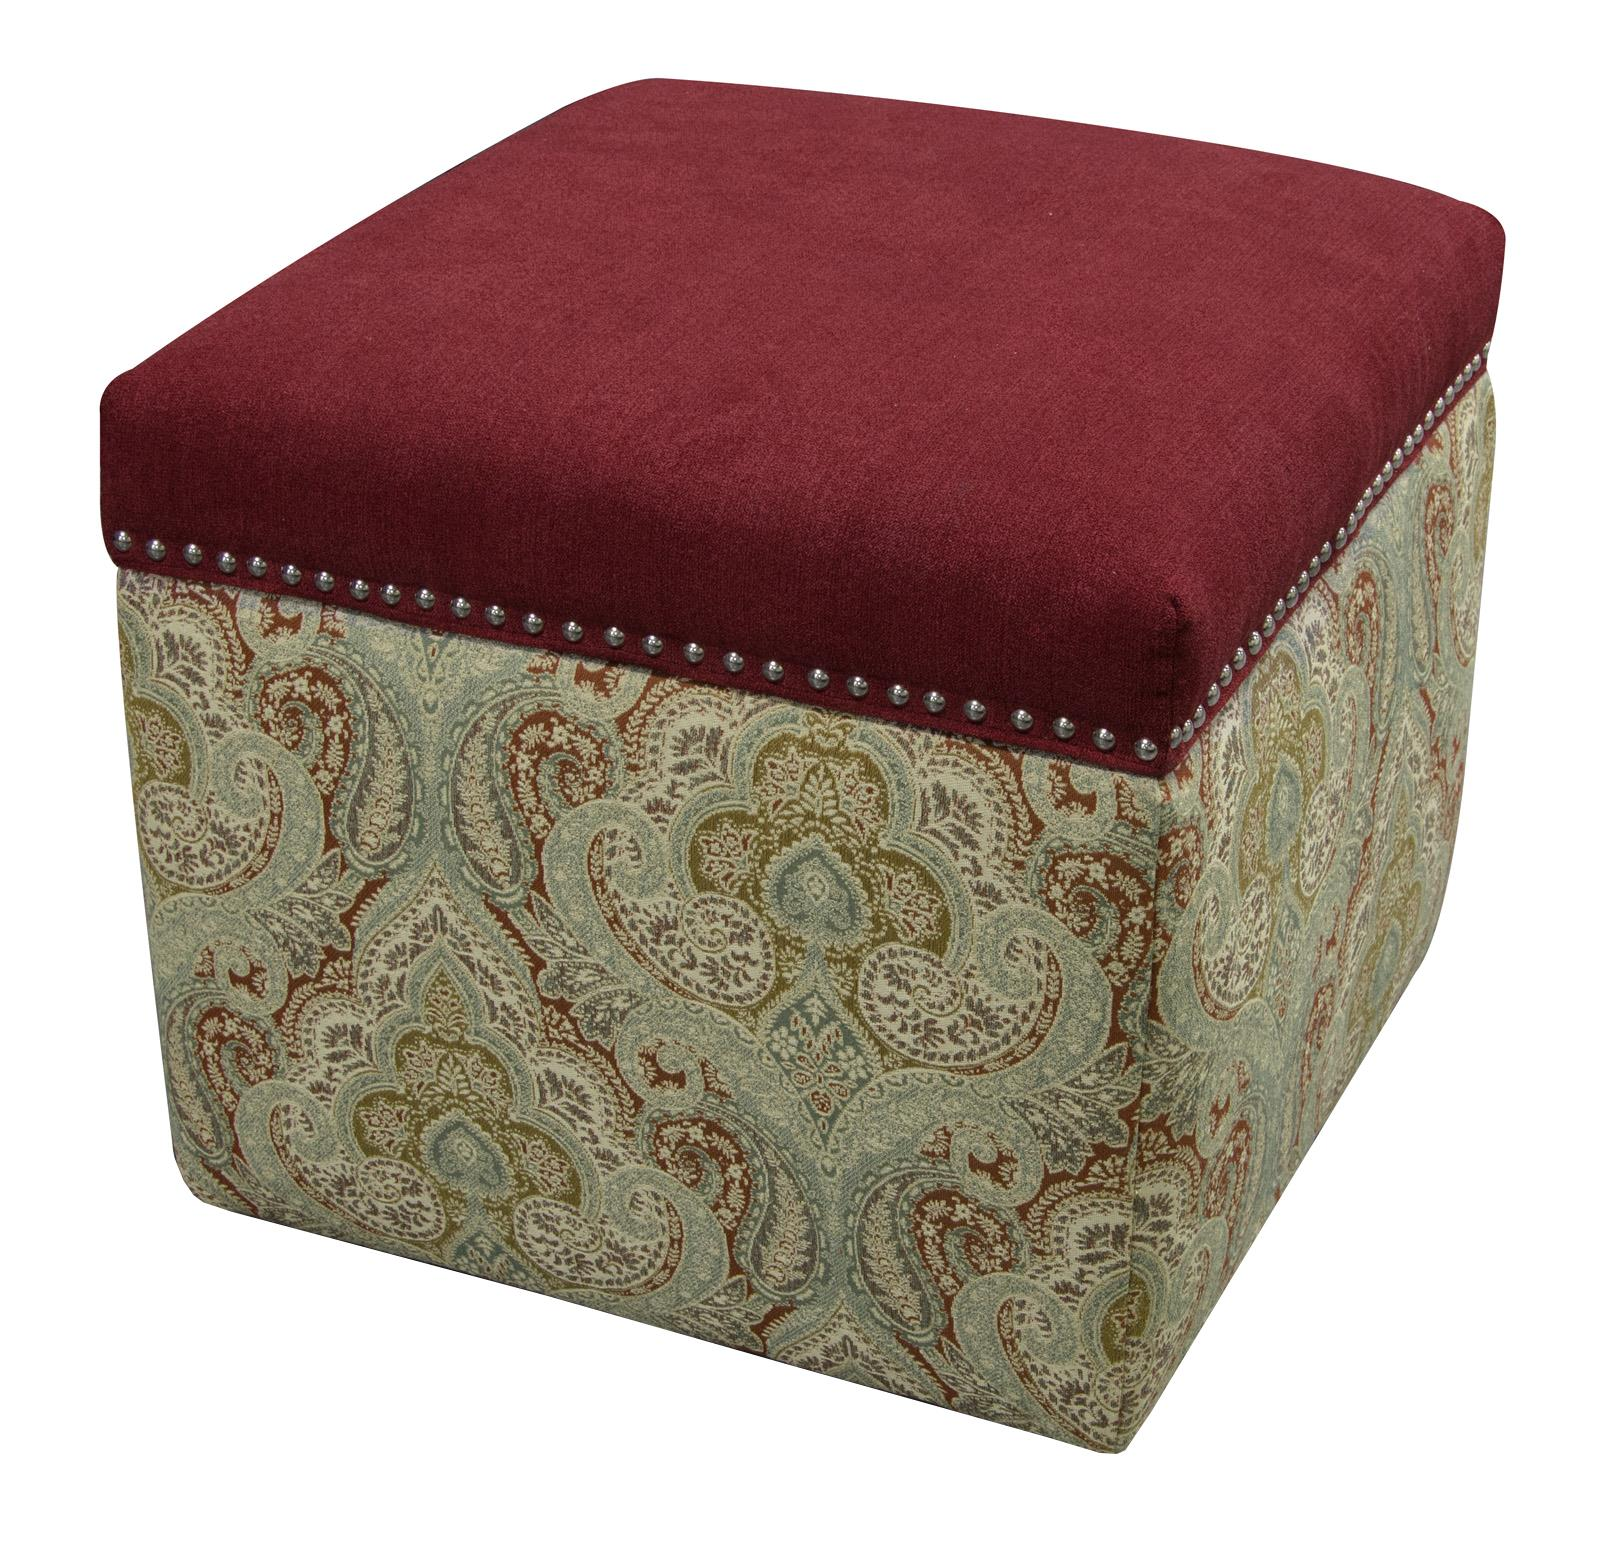 England Parson Storage Ottoman with Nailhead Trim - Item Number: 2F0081N-6940